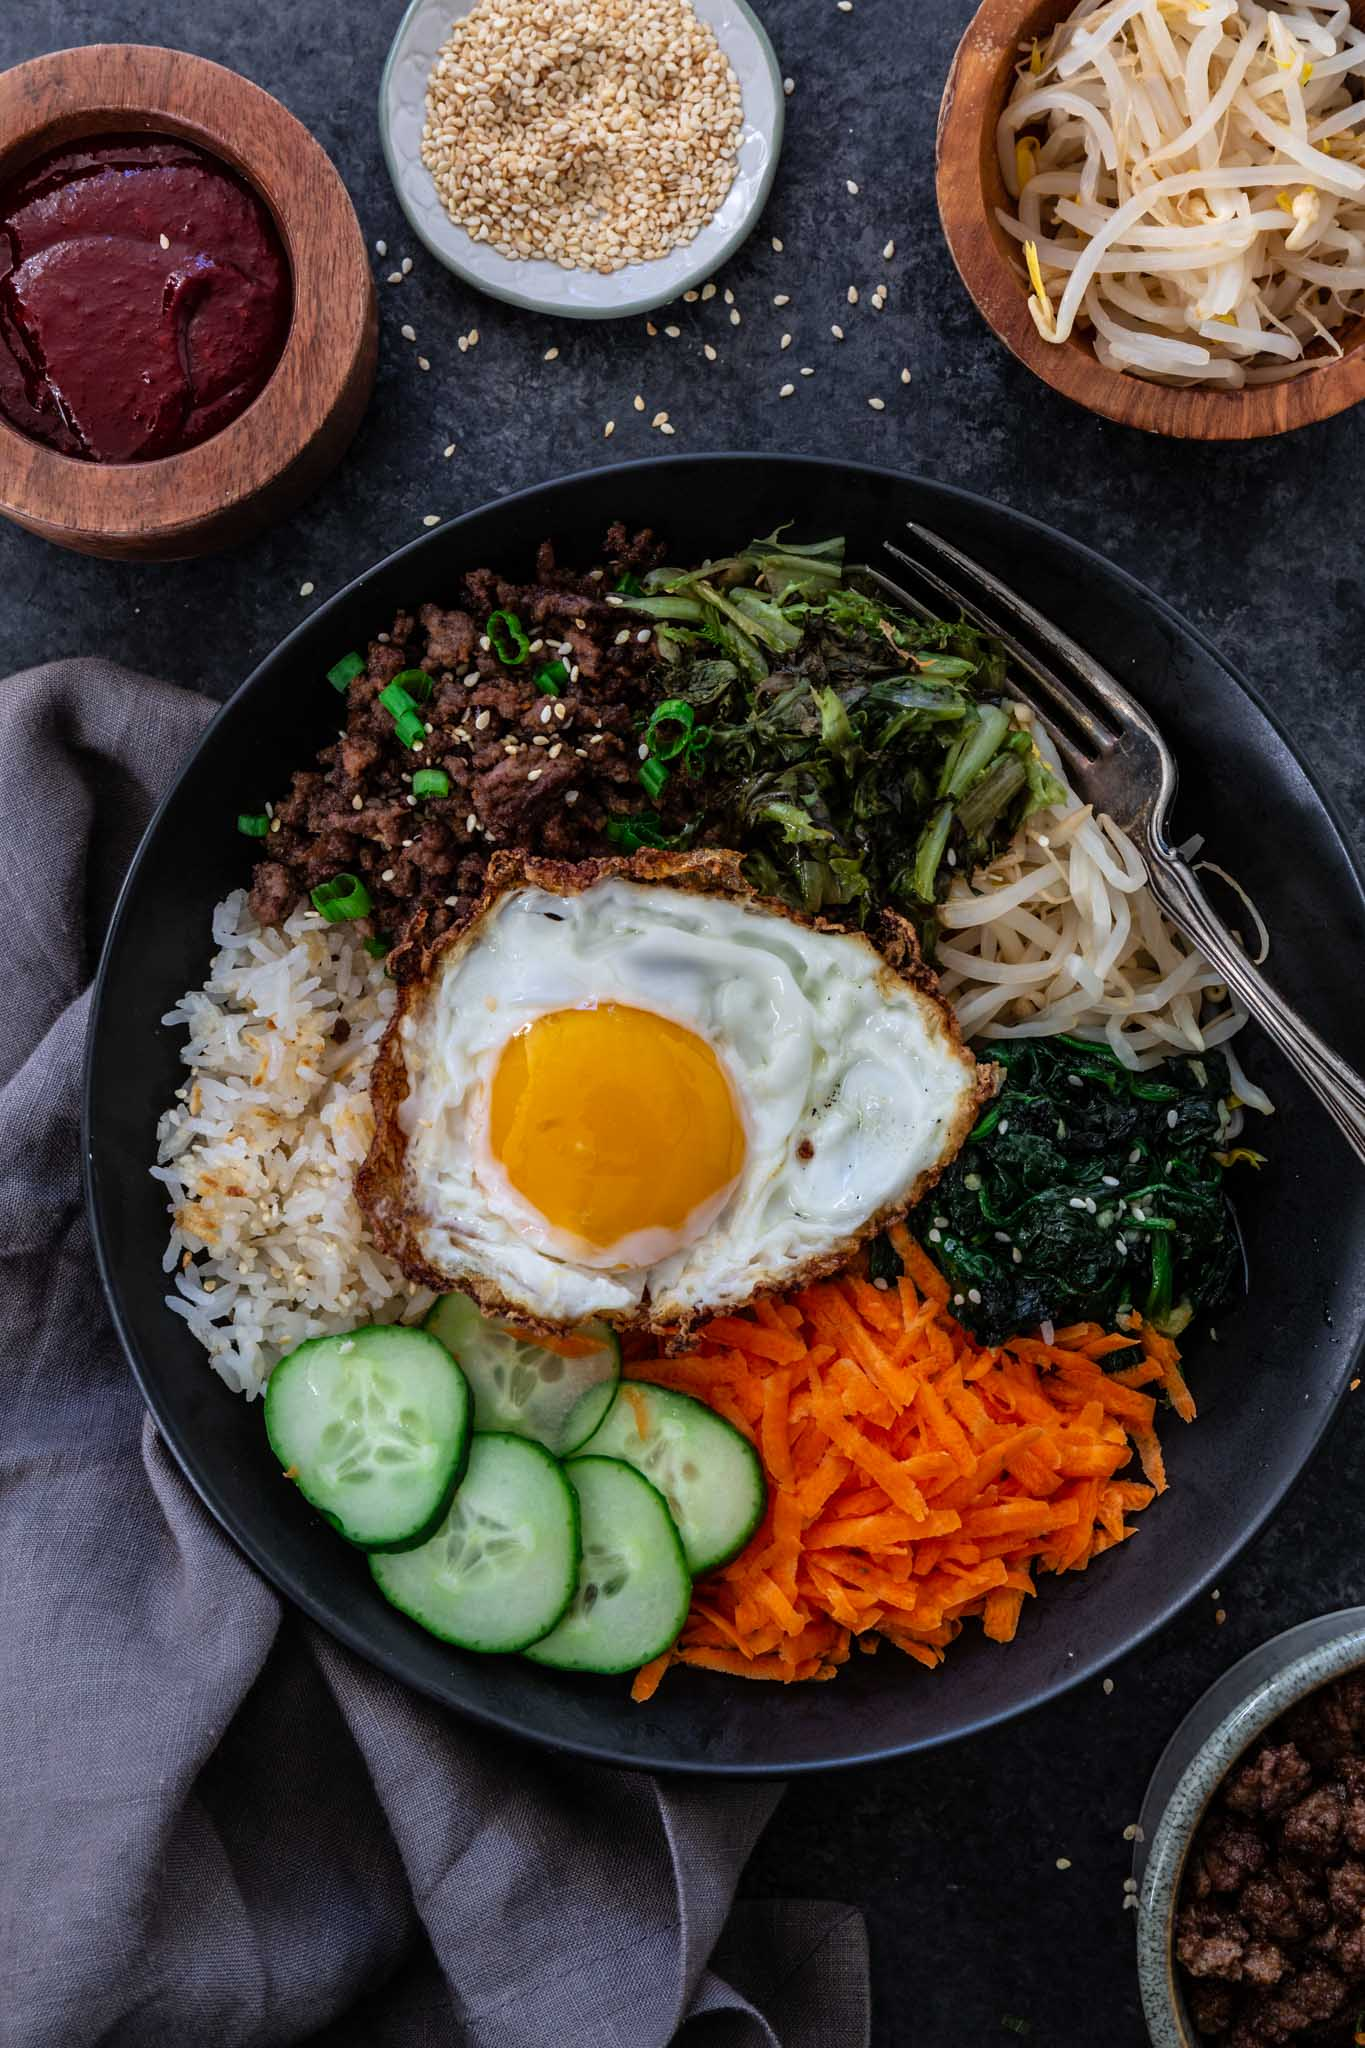 Bibimbap (Korean Beef Rice Bowl)   www.oliviascuisine.com   My version of Bibimbap, a popular Korean rice dish, takes a few shortcuts for convenience! The good news is that it's done in less than 30 minutes without compromising flavor. Serve with a fried egg on top for that extra wow factor! (Recipe and food photography by @oliviascuisine.)